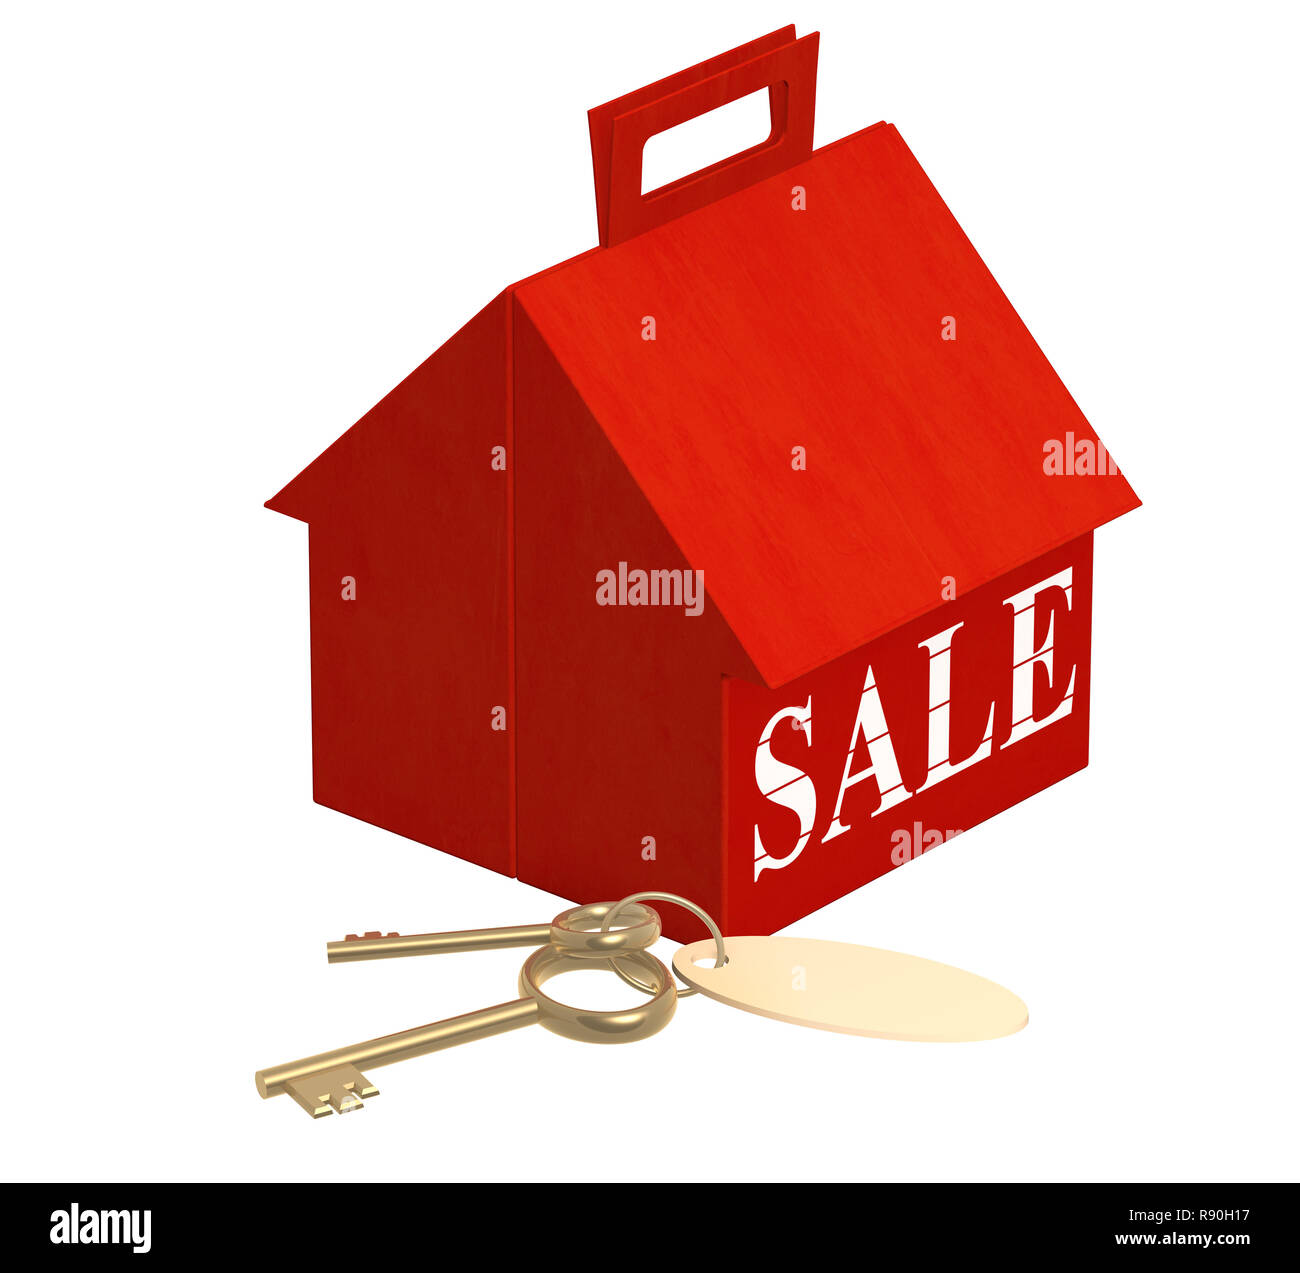 Conceptual image - house for sale - Stock Image